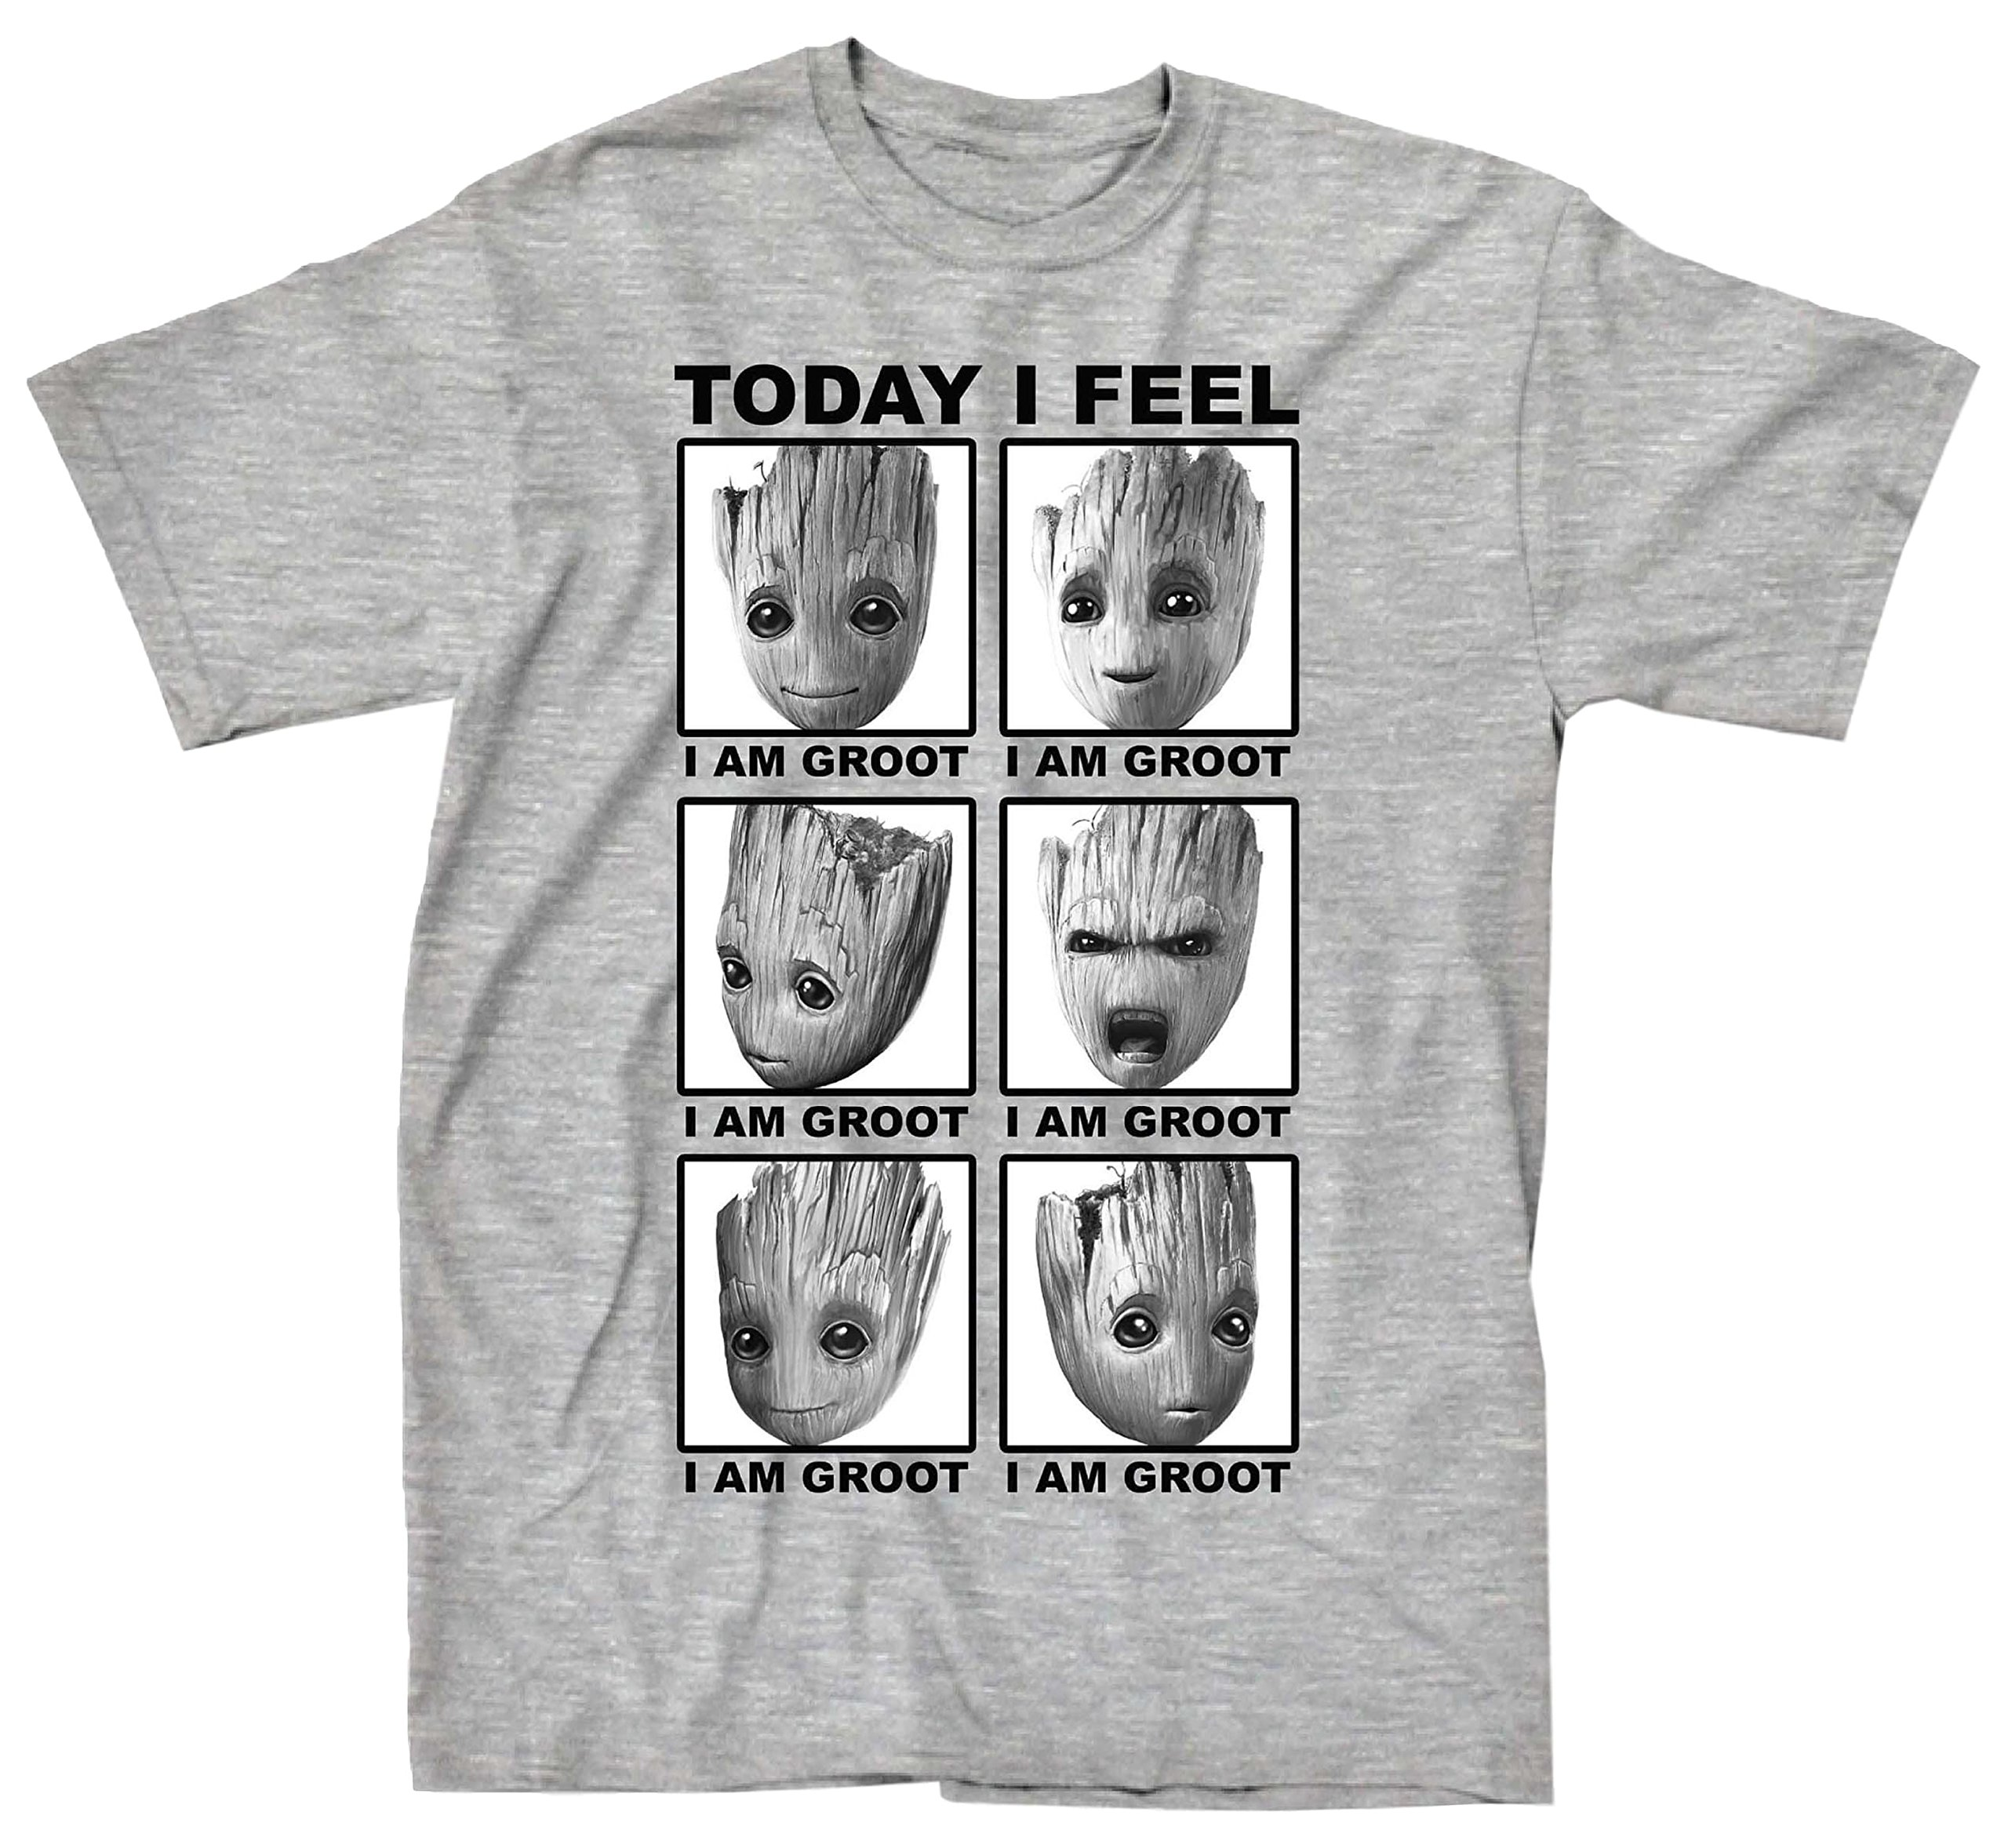 Marvel Guardians Of The Galaxy 2 Faces Of Groot Today I Feel Adult T-Shirt Tee